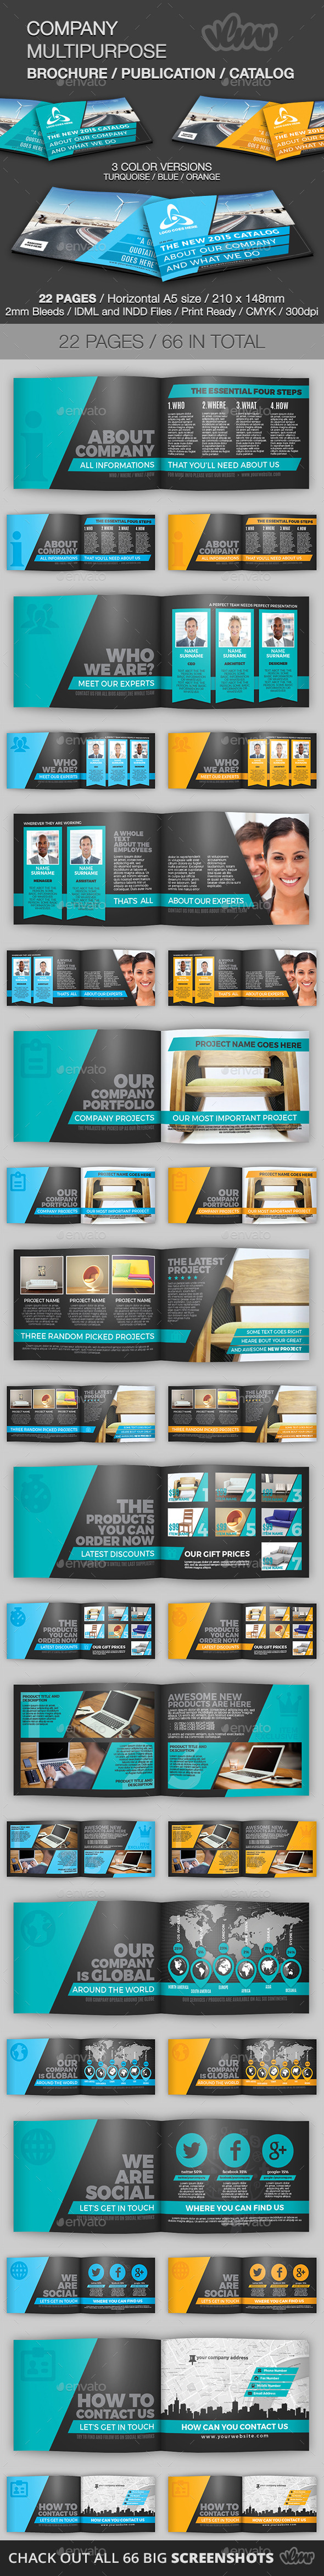 GraphicRiver Company Multipurpose Brochure Template 11478675